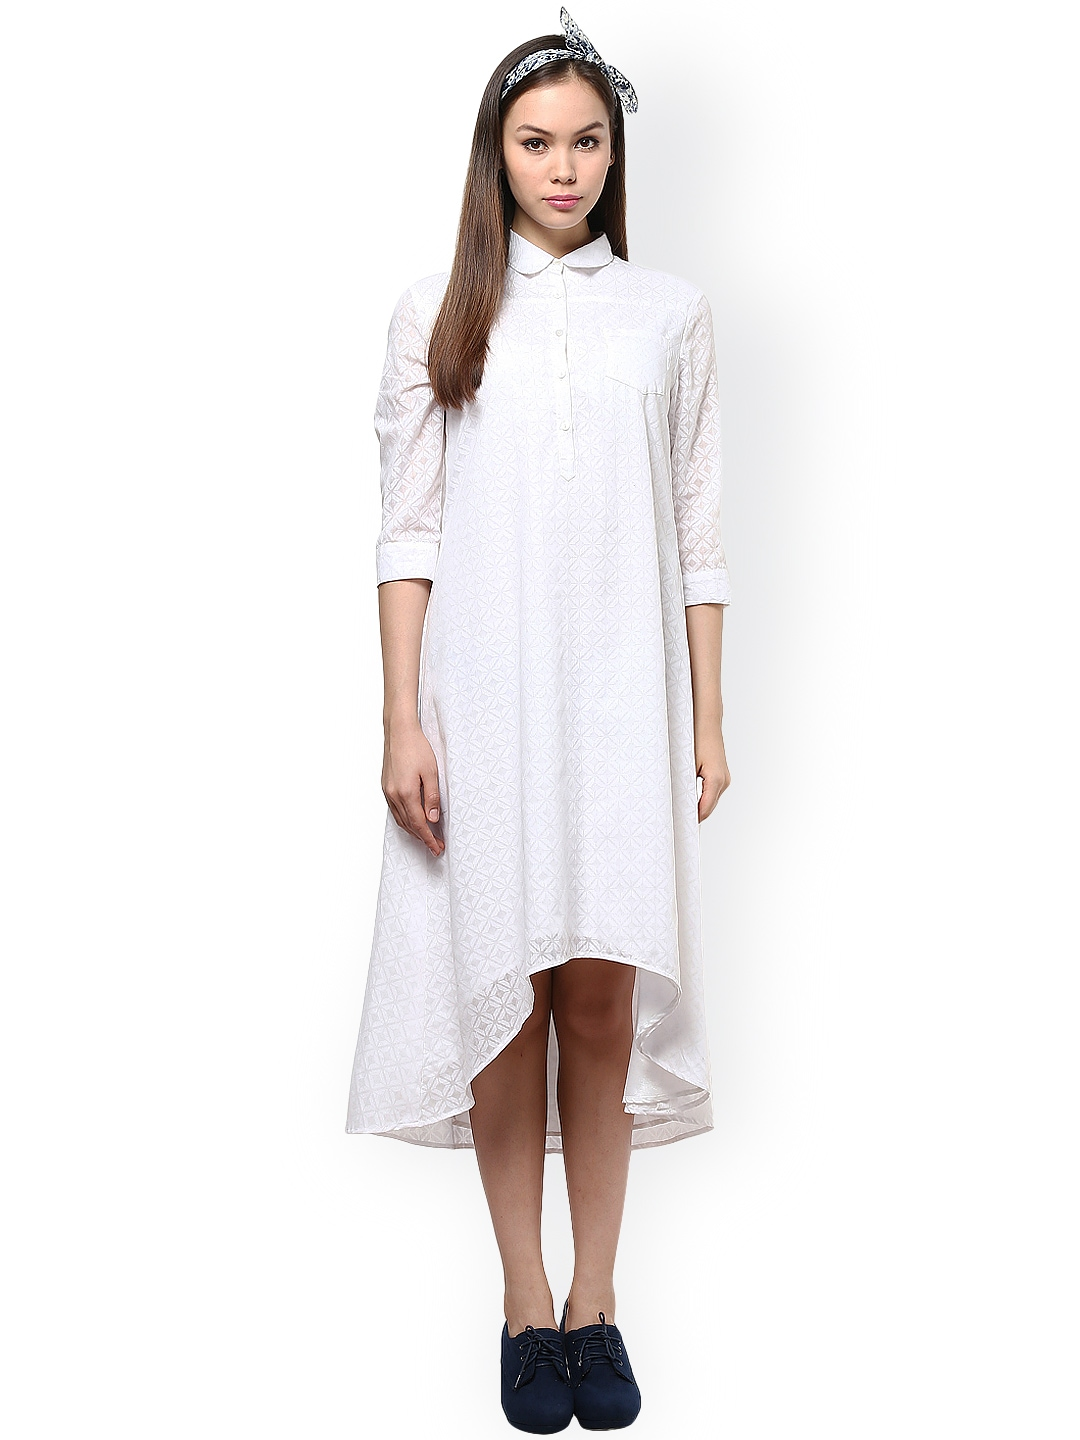 Myntra femella white self printed shirt dress 890353 buy for Buy white dress shirt